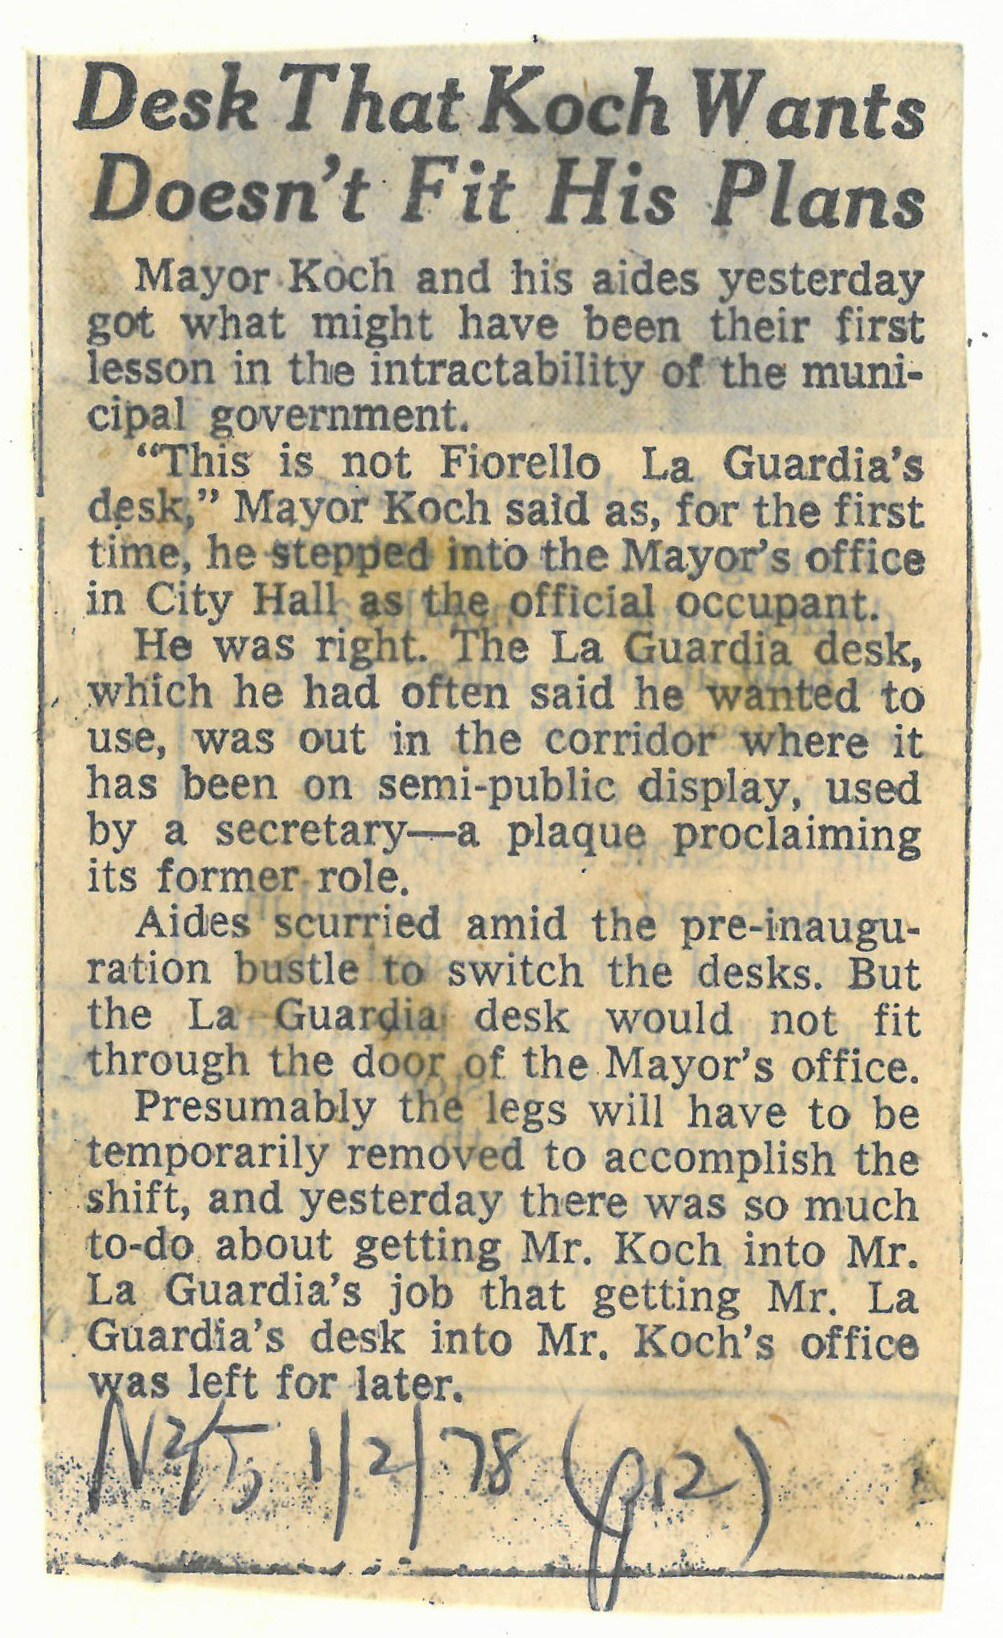 The newly inaugurated Mayor Koch certainly faced daunting crises upon his January 1, 1978 inauguration, but more immediately, his plan to use Mayor LaGuardia's desk was thwarted when it wouldn't fit through the door of his office. NYC Municipal Library.